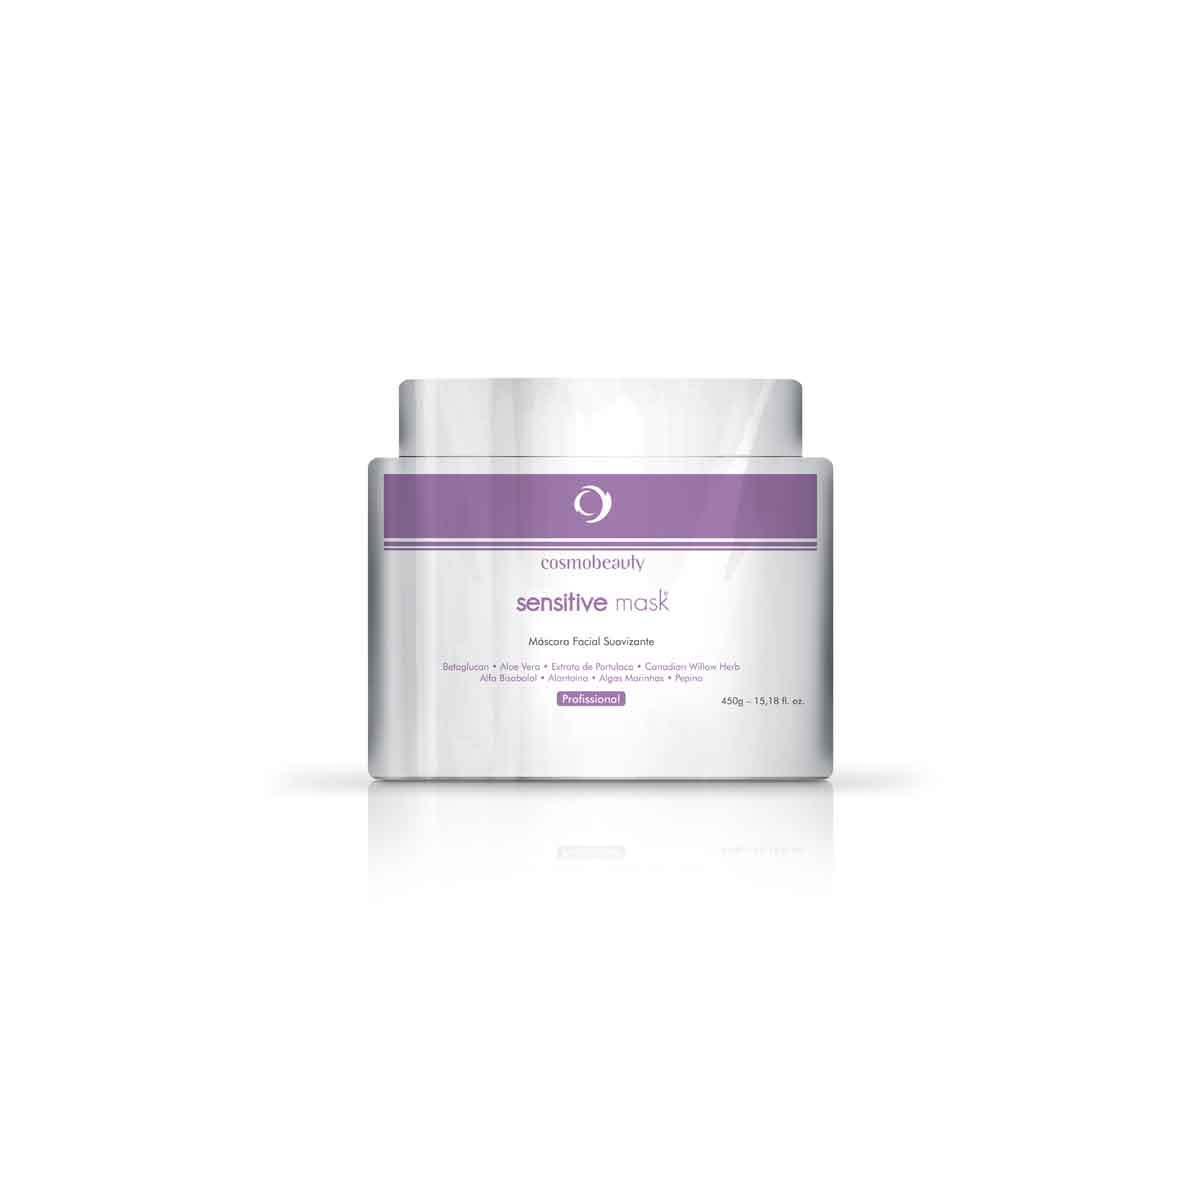 Máscara Facial Suavizante Sensitive Mask - 450g